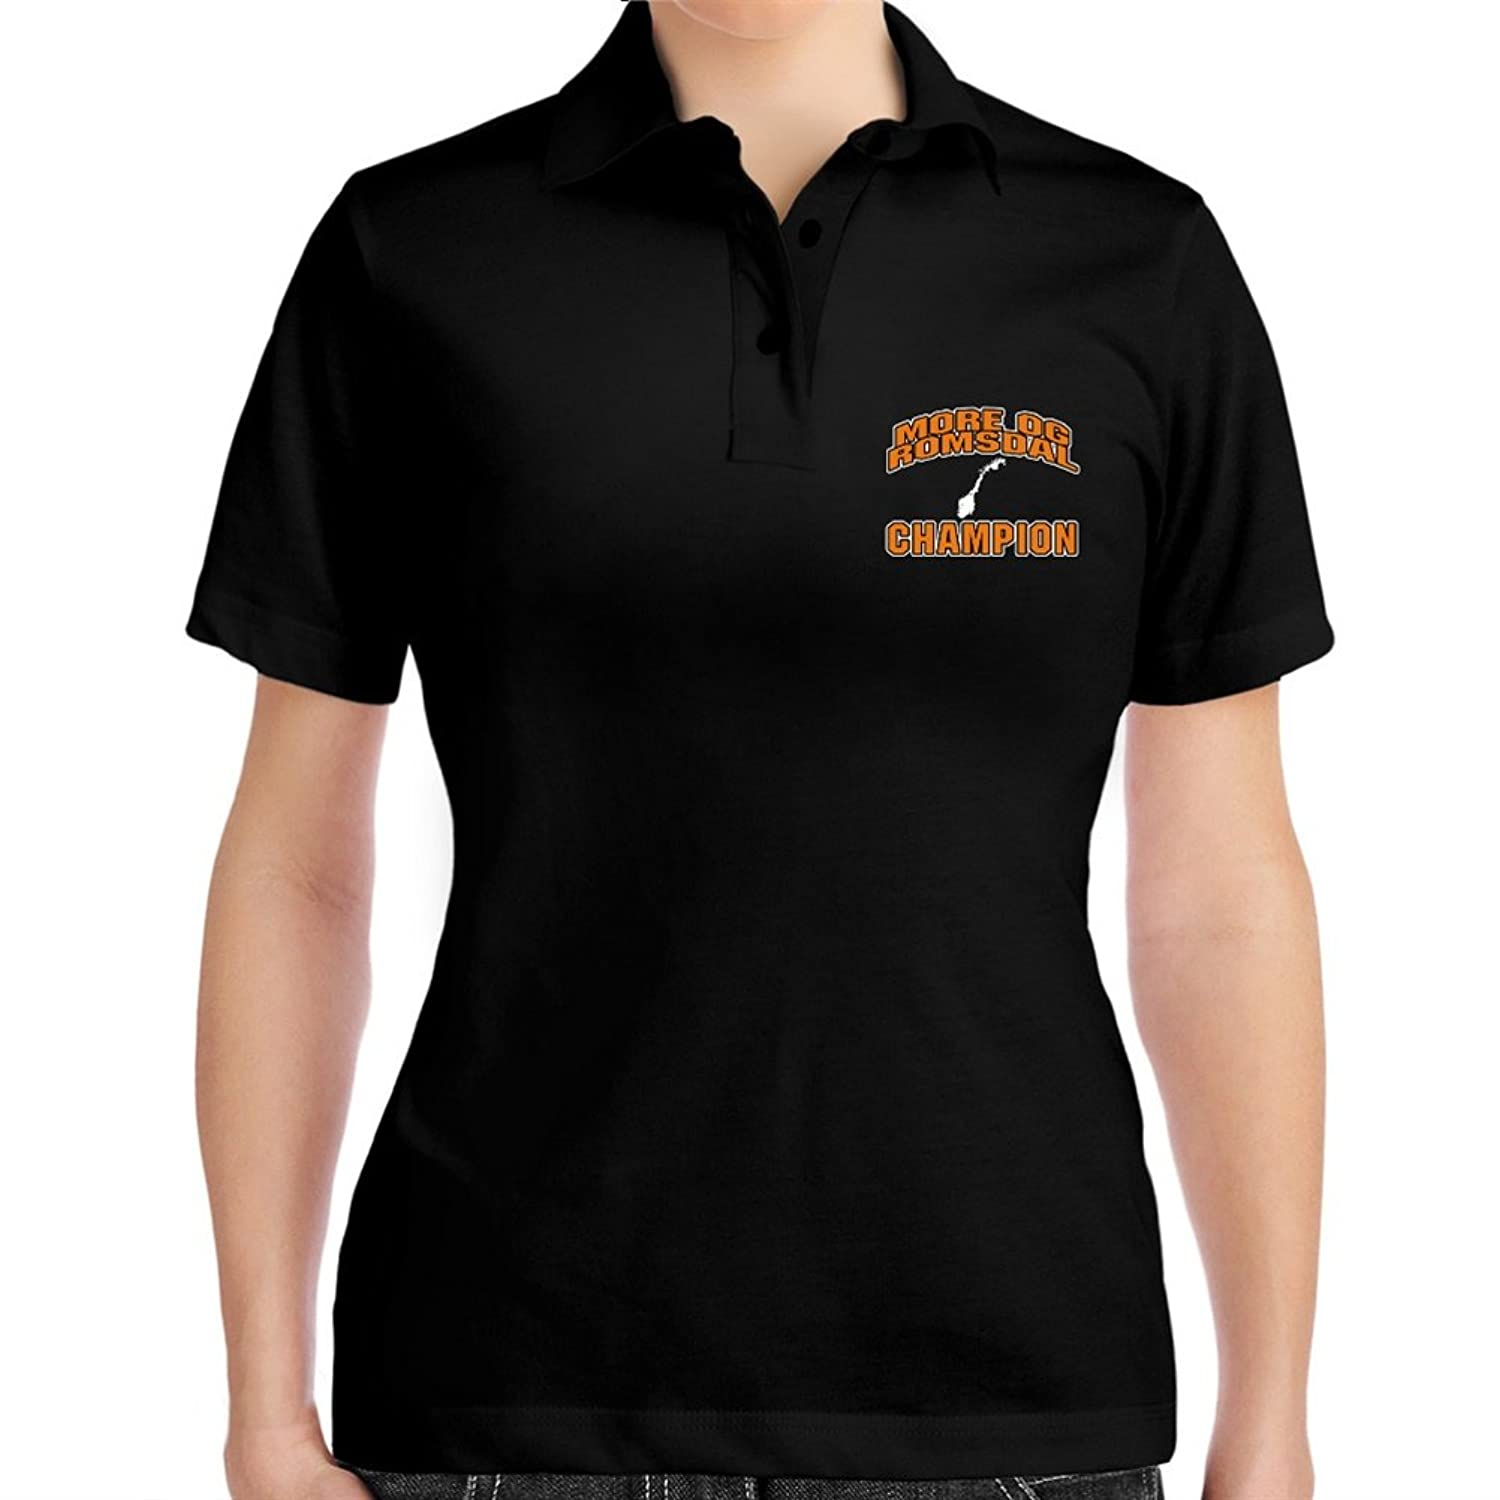 More Og Romsdal champion Women Polo Shirt